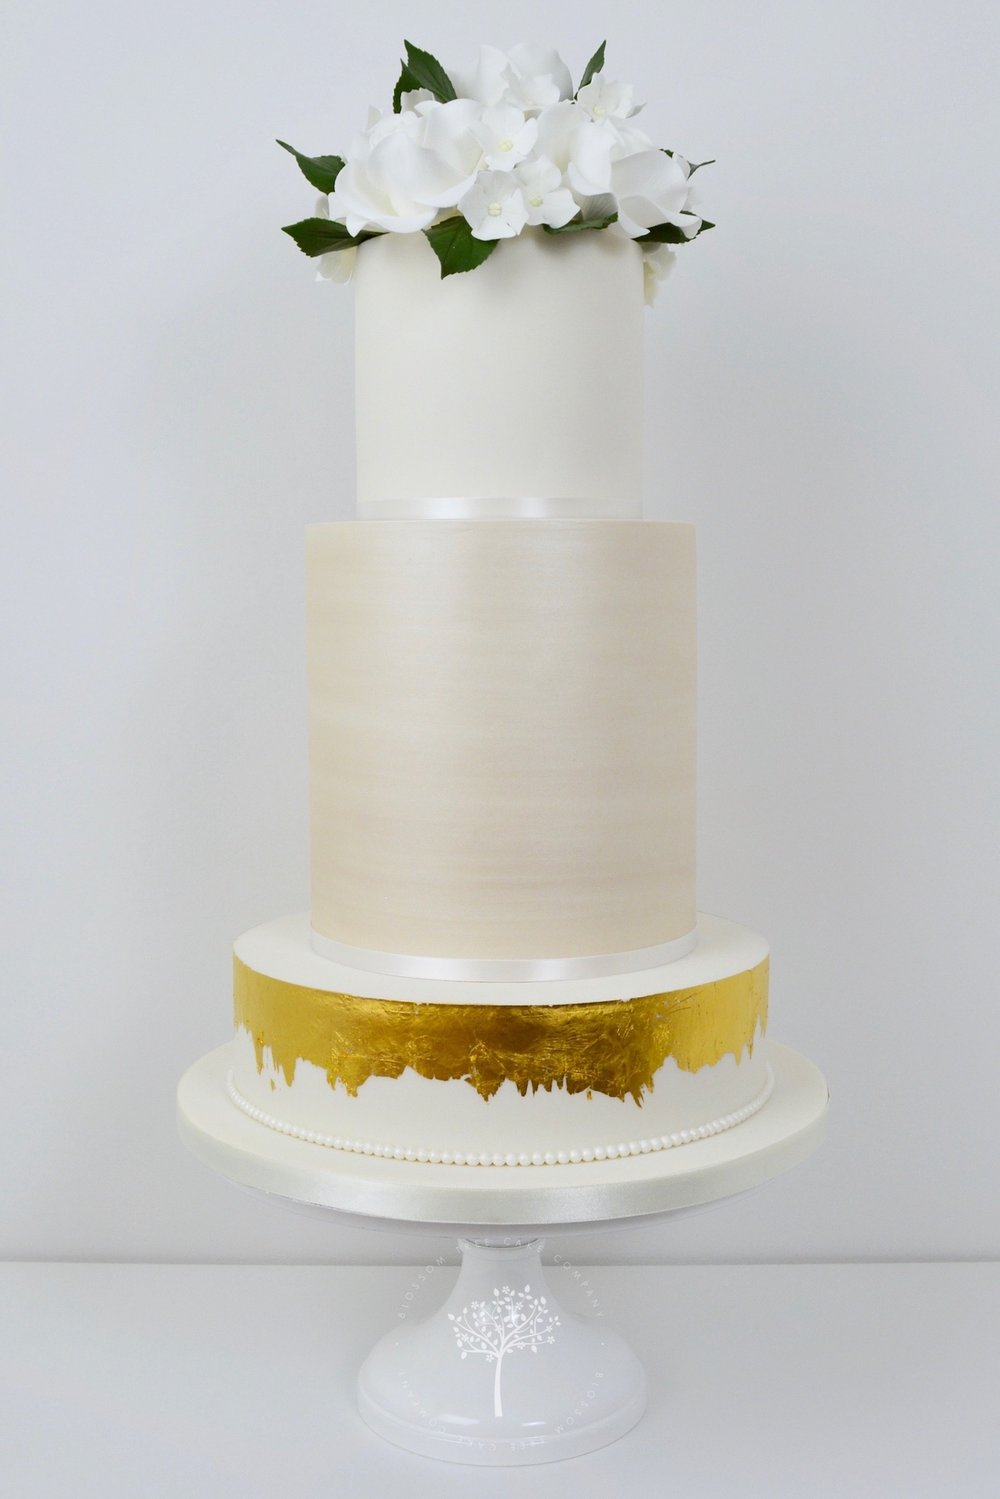 Champagne and White Roses wedding cake by Blossom Tree Cake Company Harrogate North Yorkshire.jpg